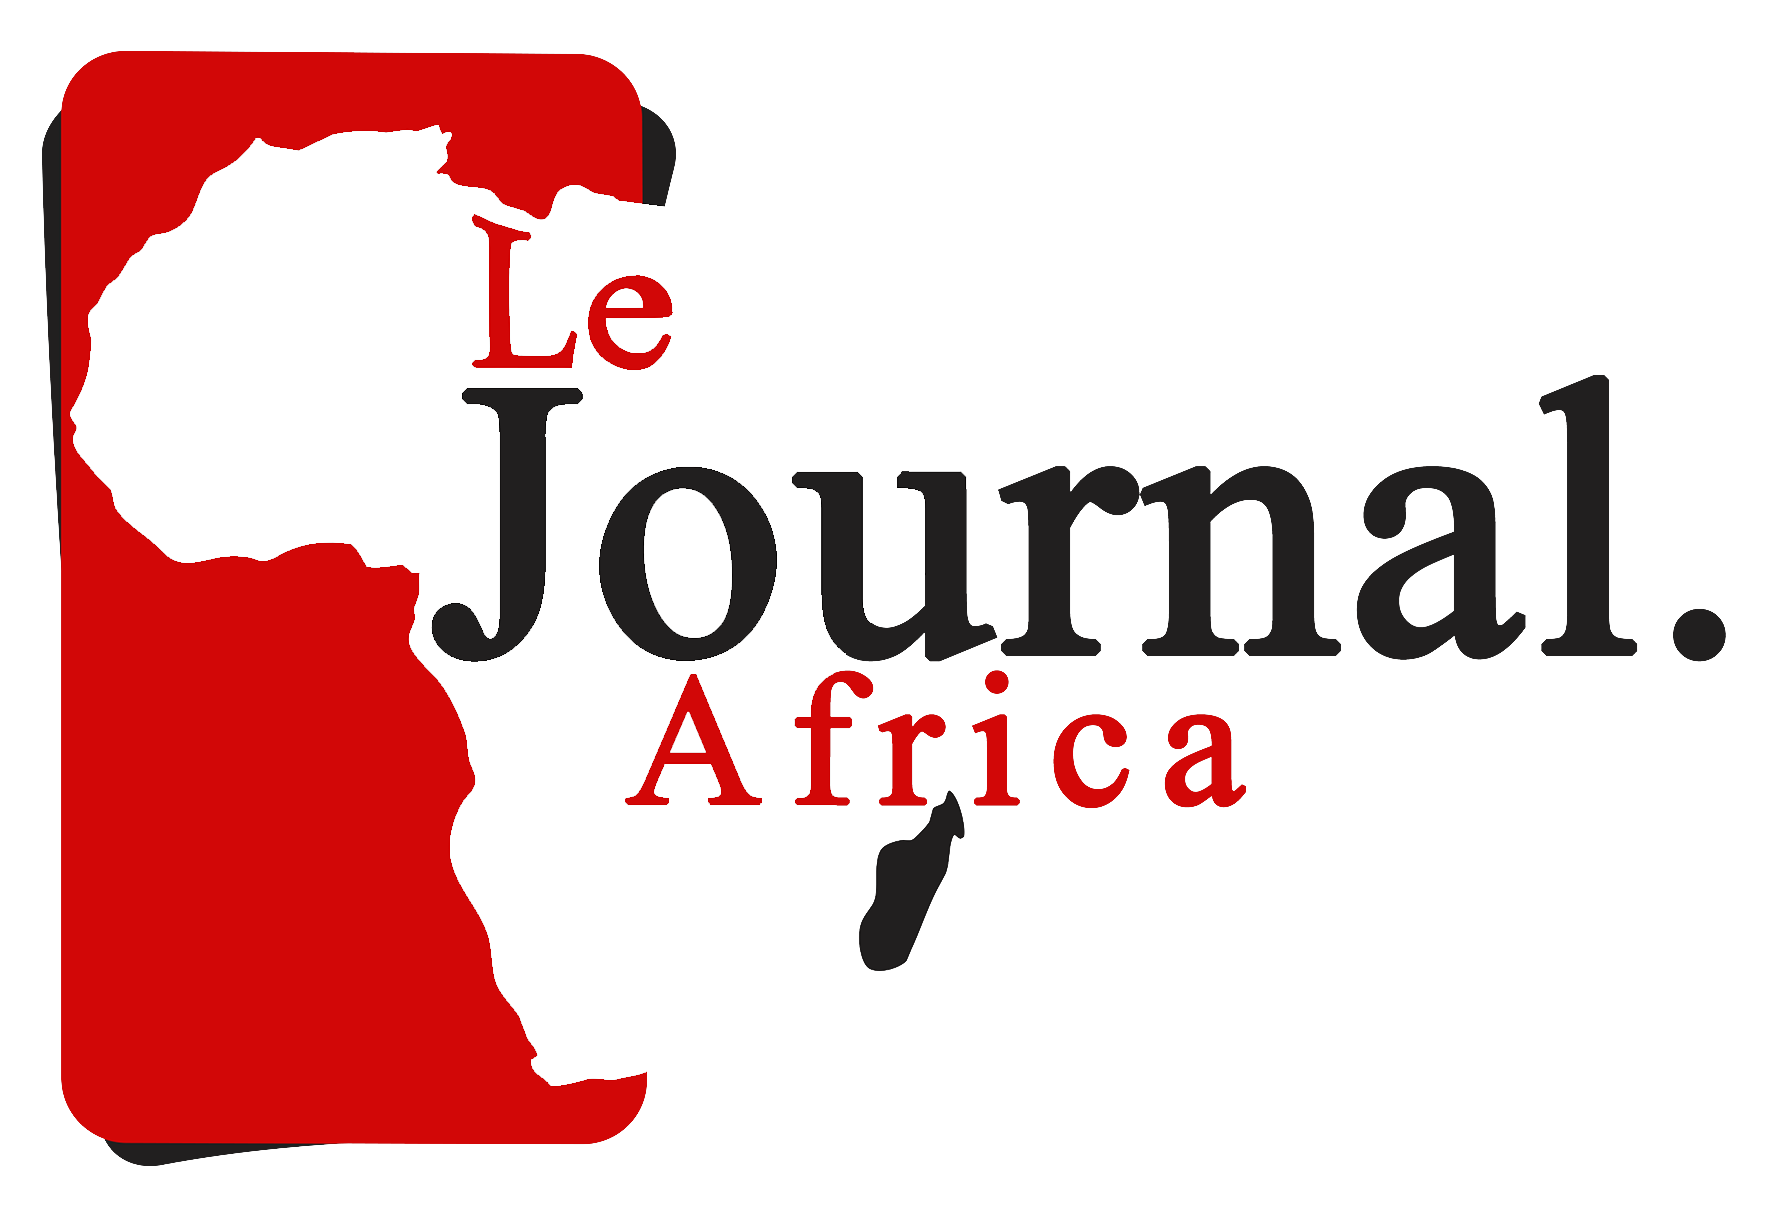 LE JOURNAL.AFRICA